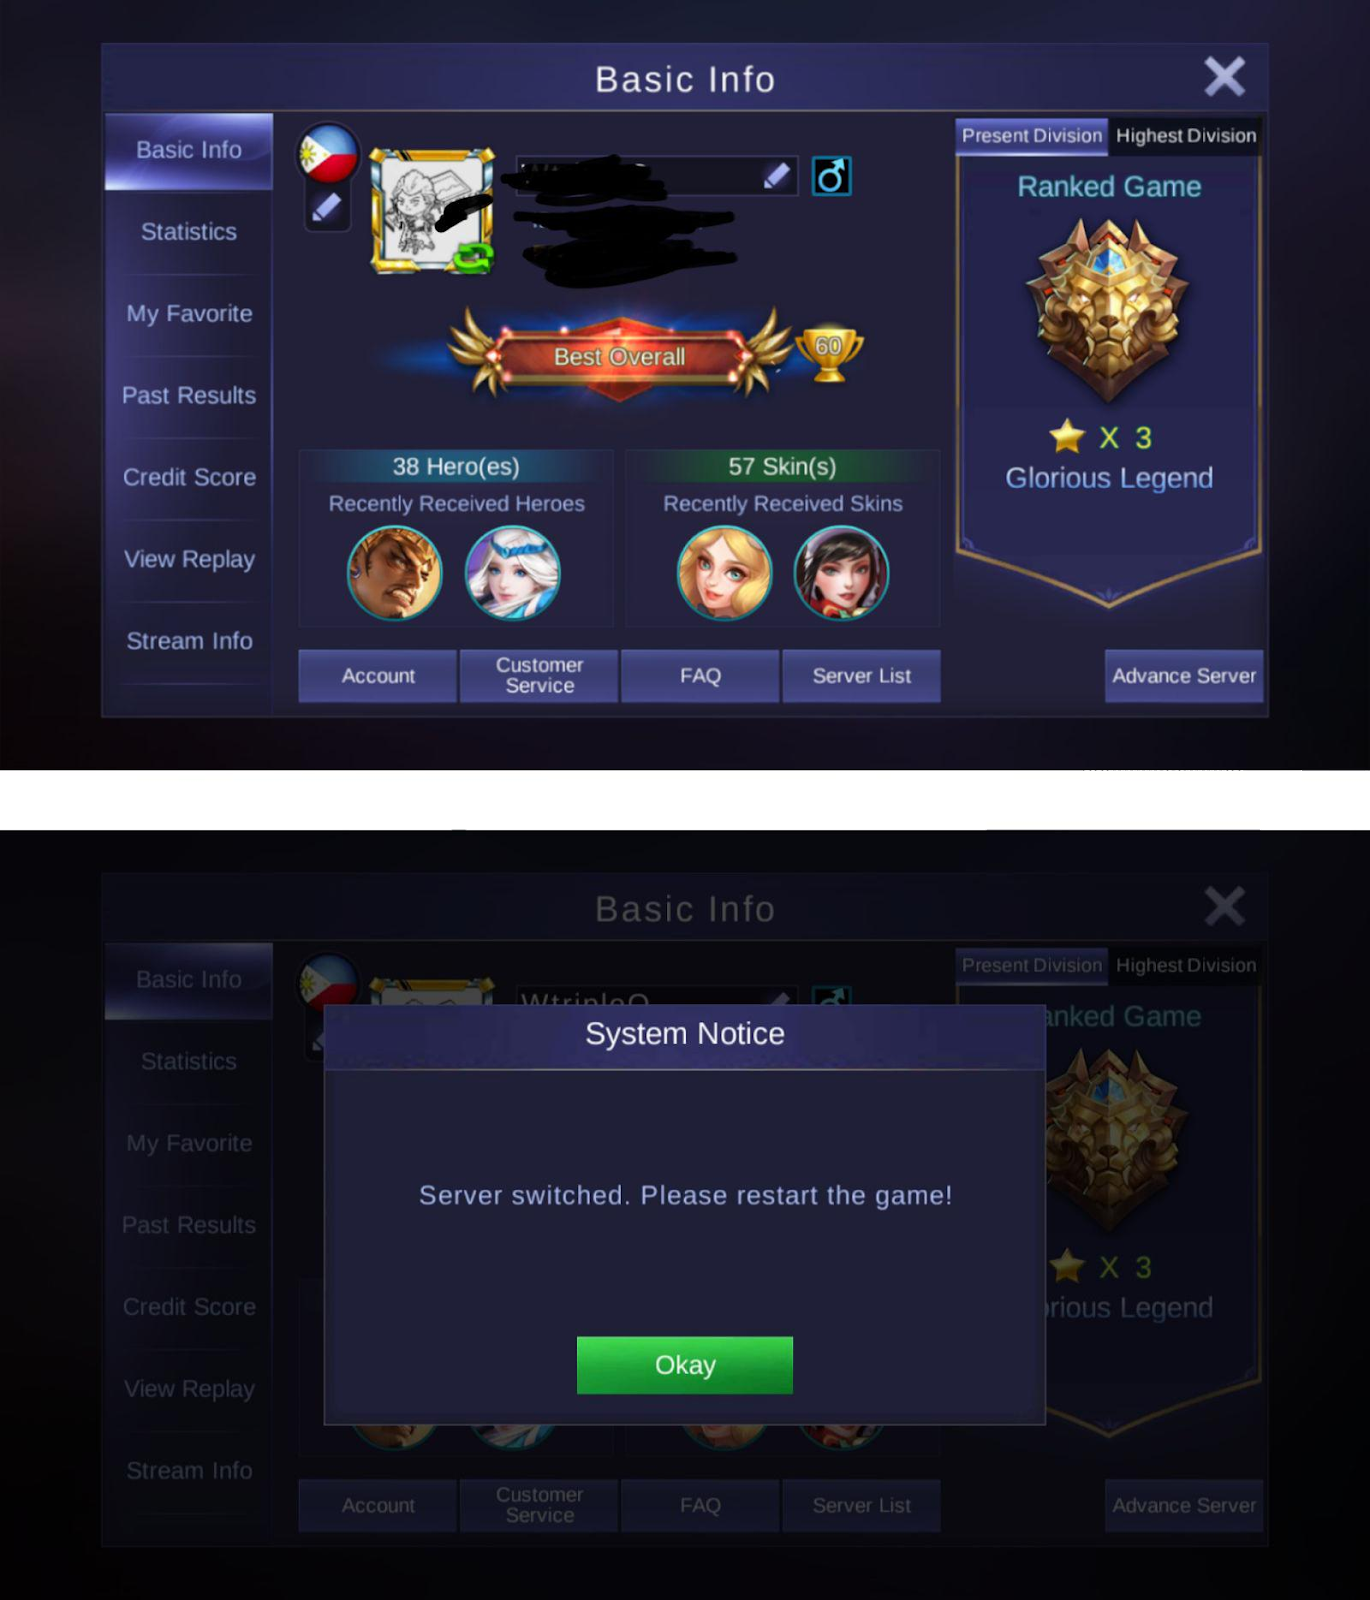 GUIDE] Account Problem - Bug Report - Mobile Legends: Bang Bang